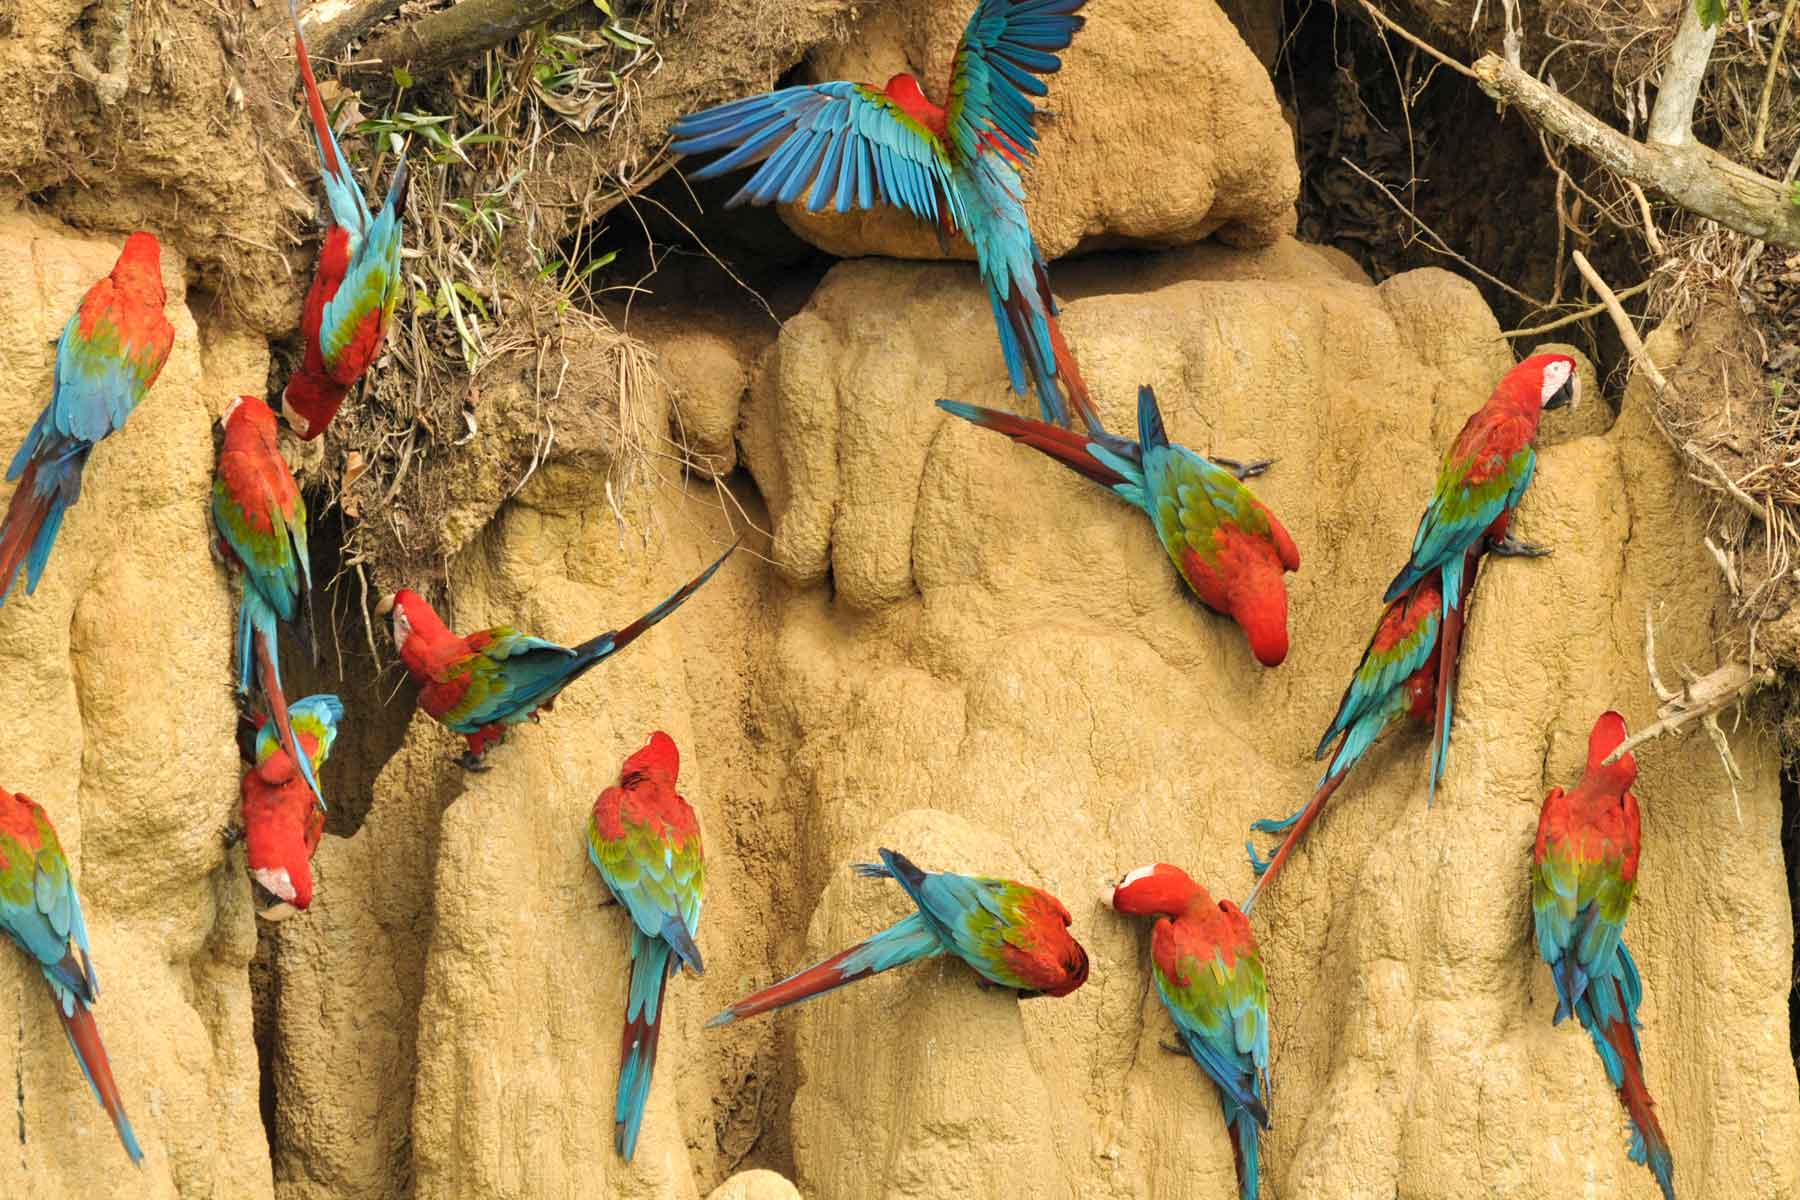 Upper Tambopata Chuncho Macaw Clay Lick and Sandoval Lake 5 Days (9)